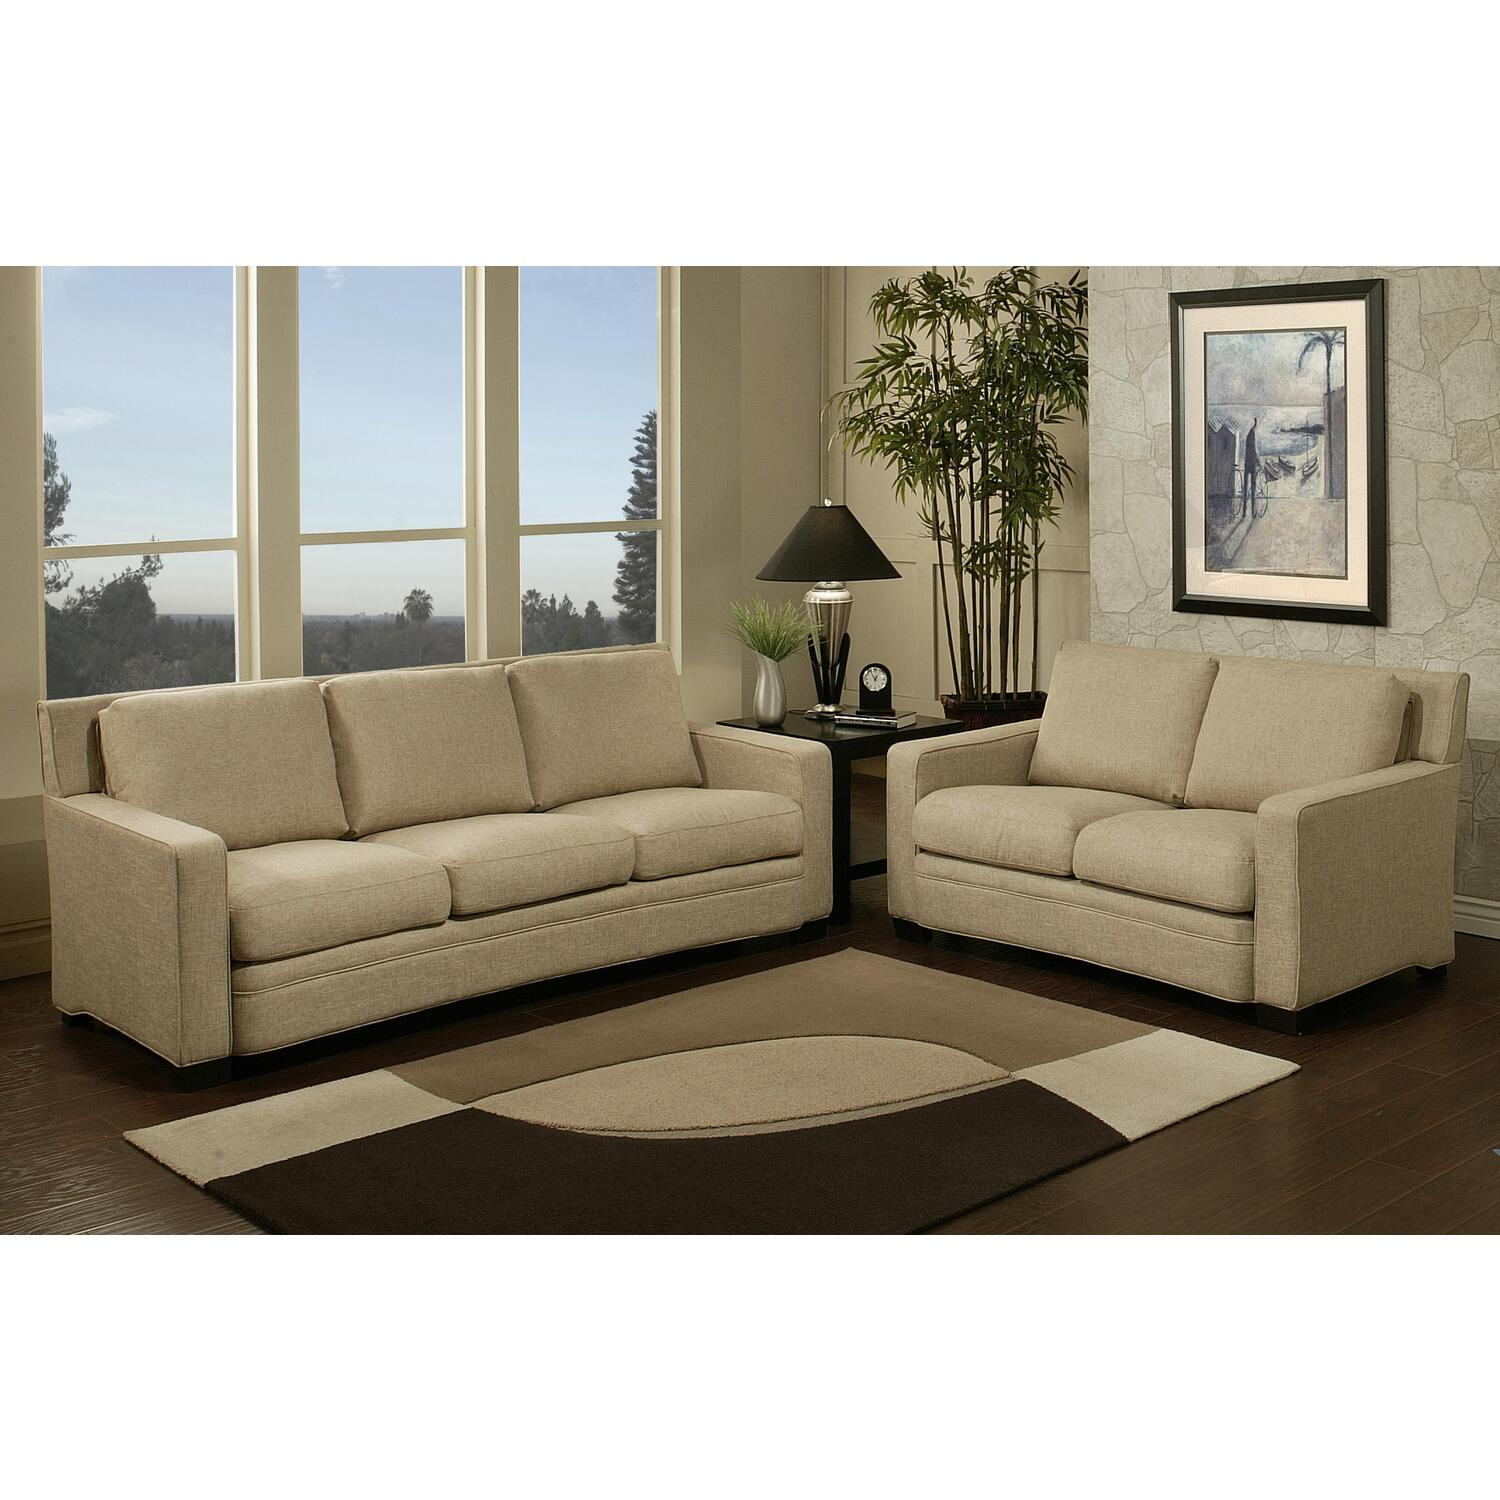 Fabric Sofa Set  Interior Home Design